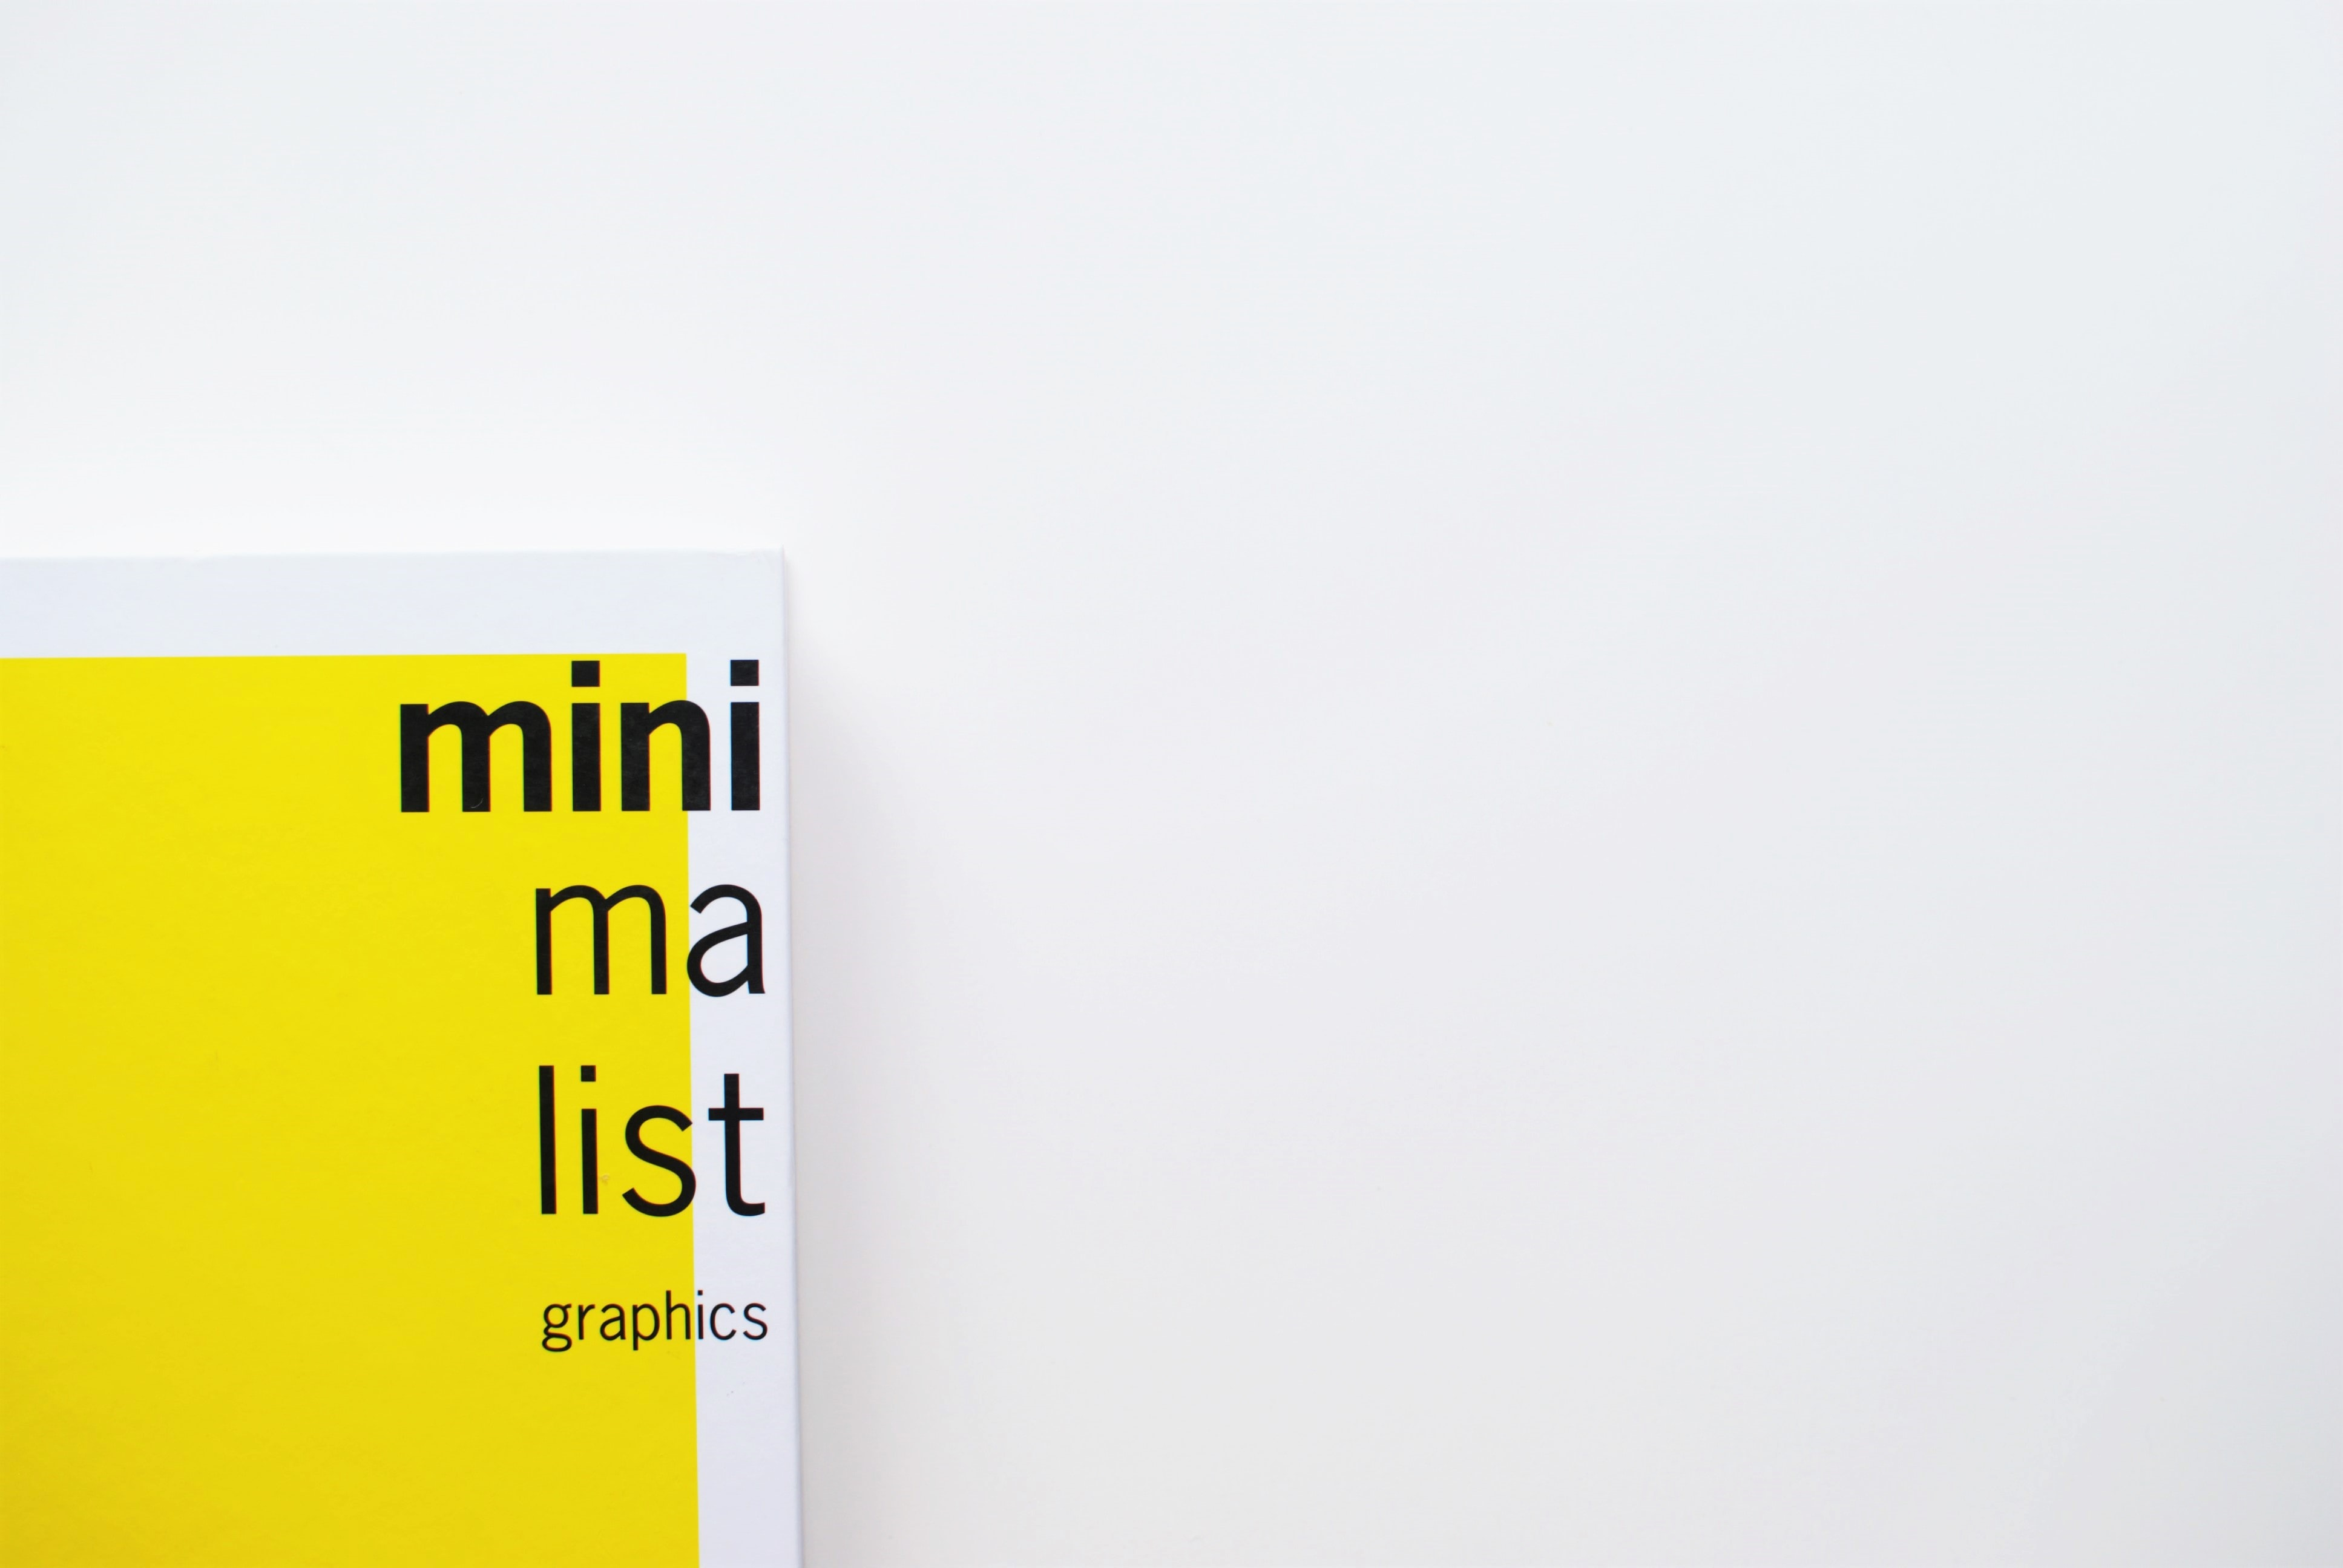 Mini Ma List graphics poster